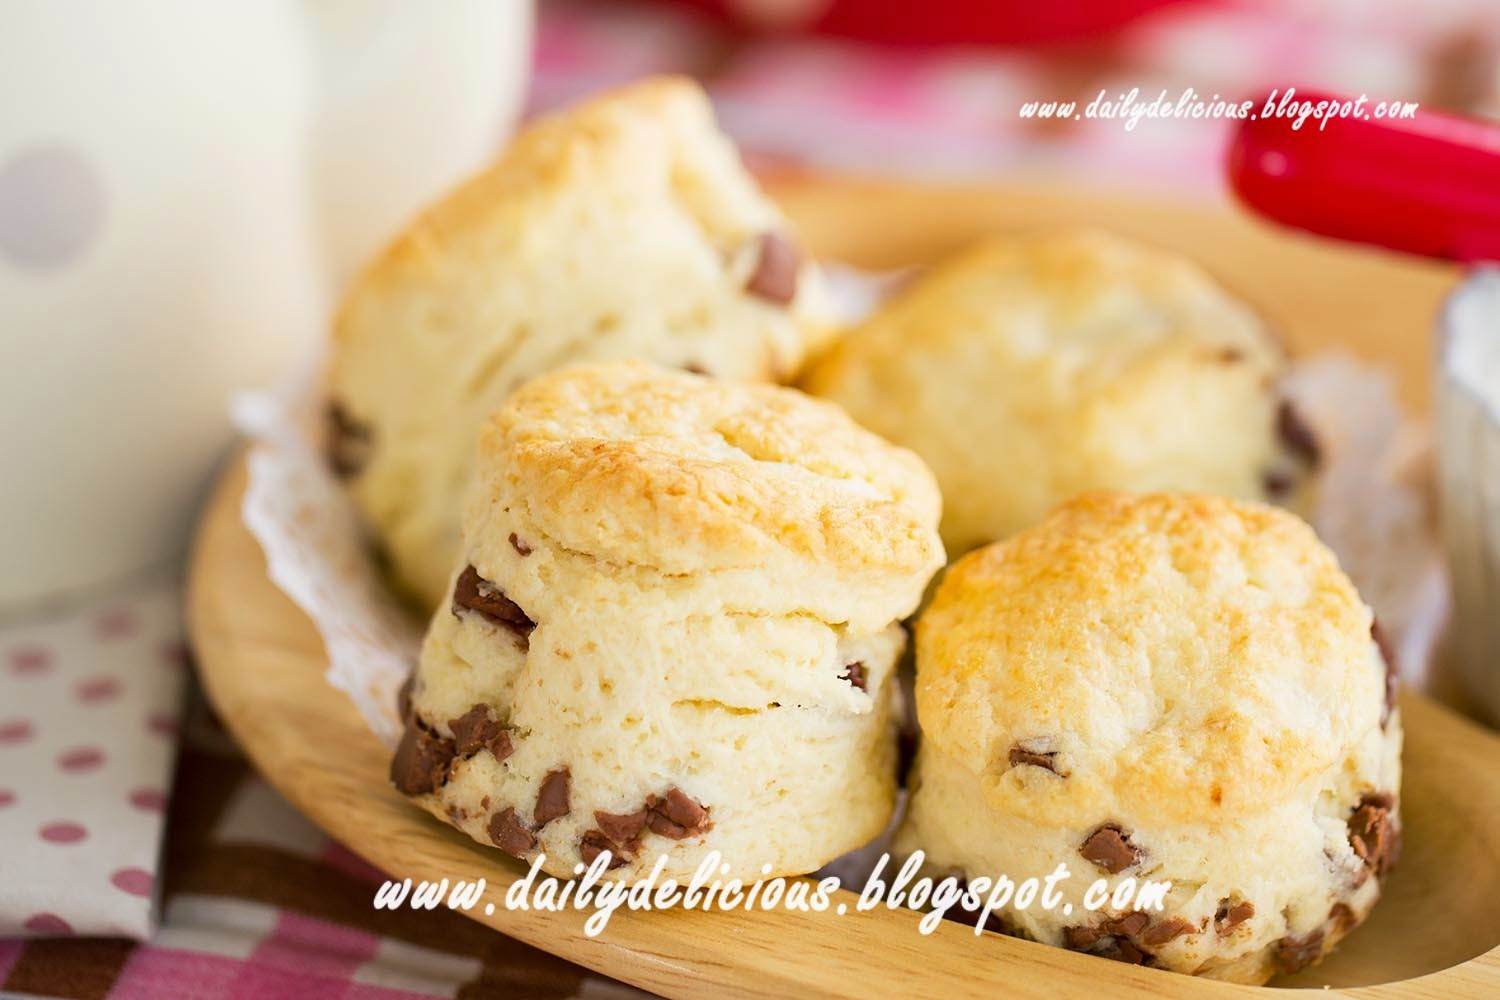 Unsalted Butter Cool And Cut Into Pieces 110g Whipping Cream 70g Milk Chocolate Chopped Or